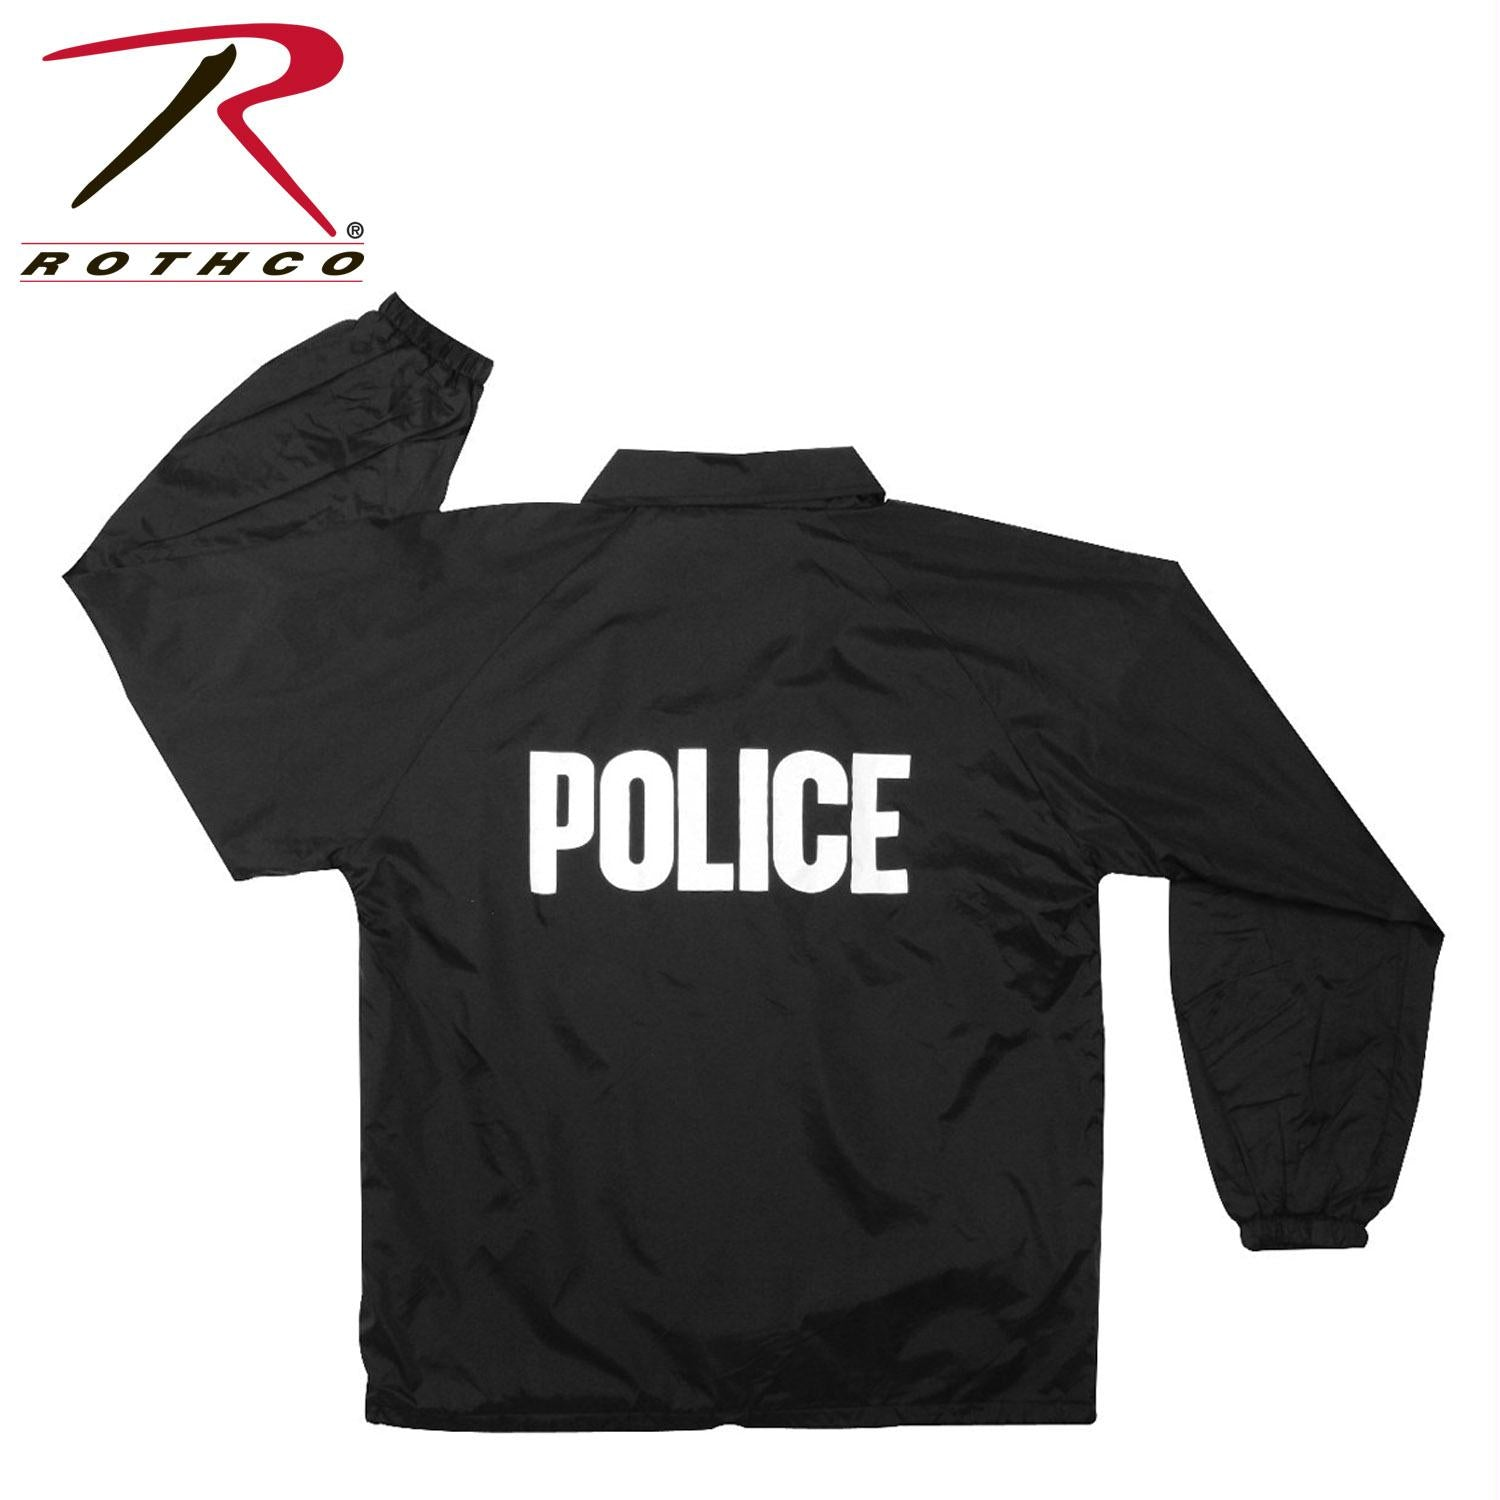 Rothco Lined Coaches Police Jacket - M